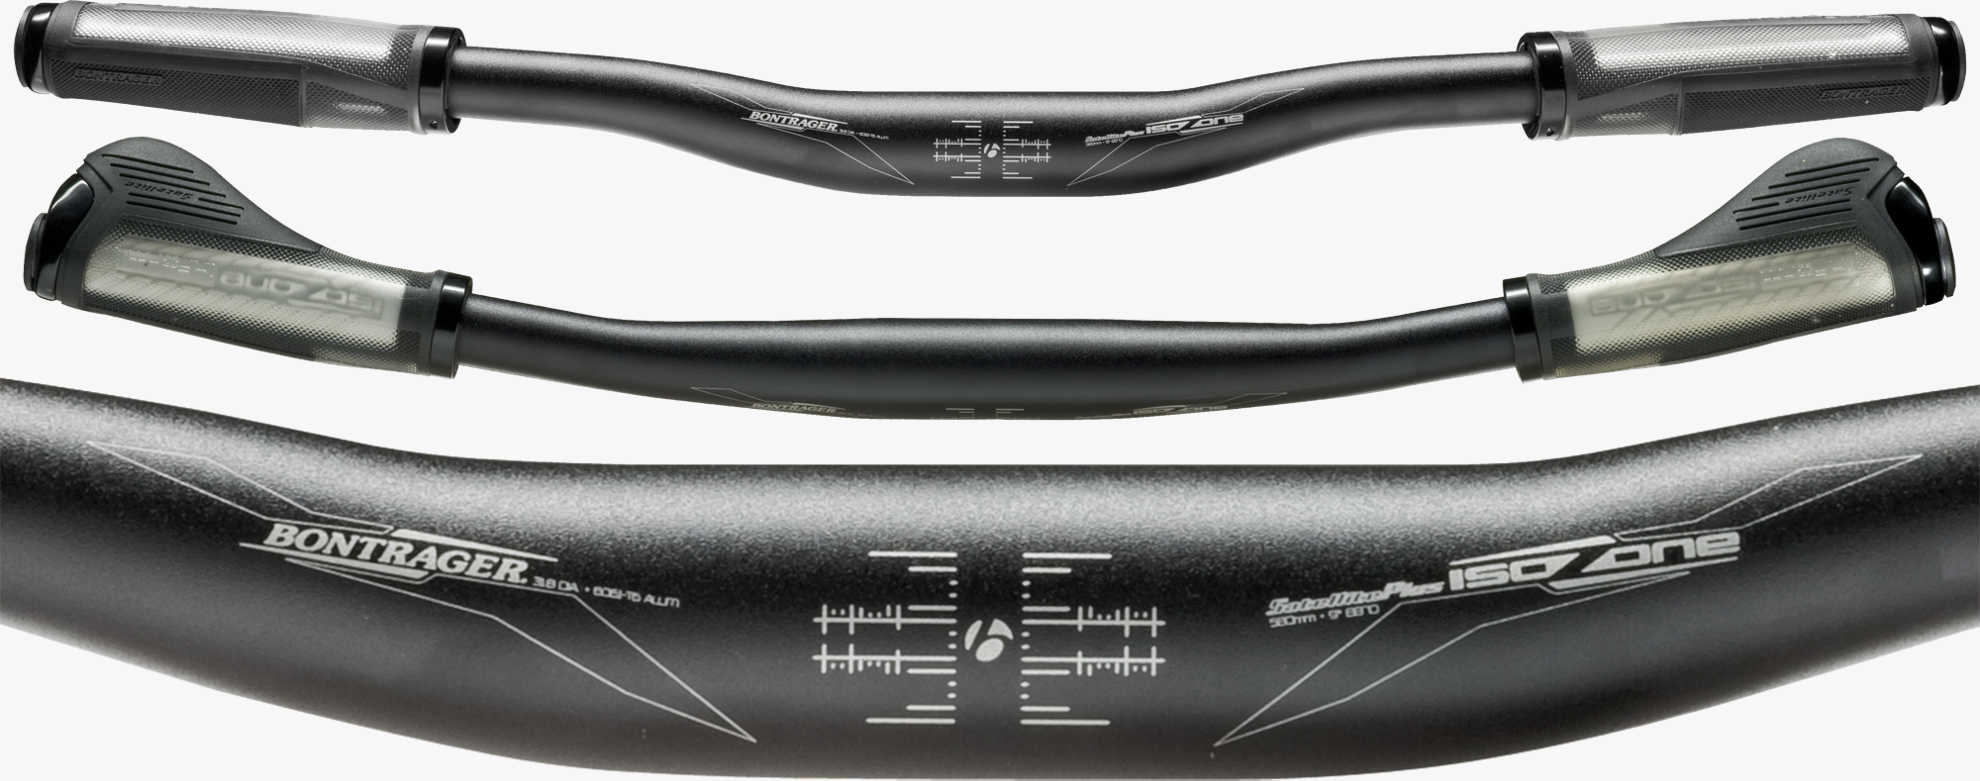 Bontrager Satellite Plus IsoZone and inForm Satellite MTB Handlebar System